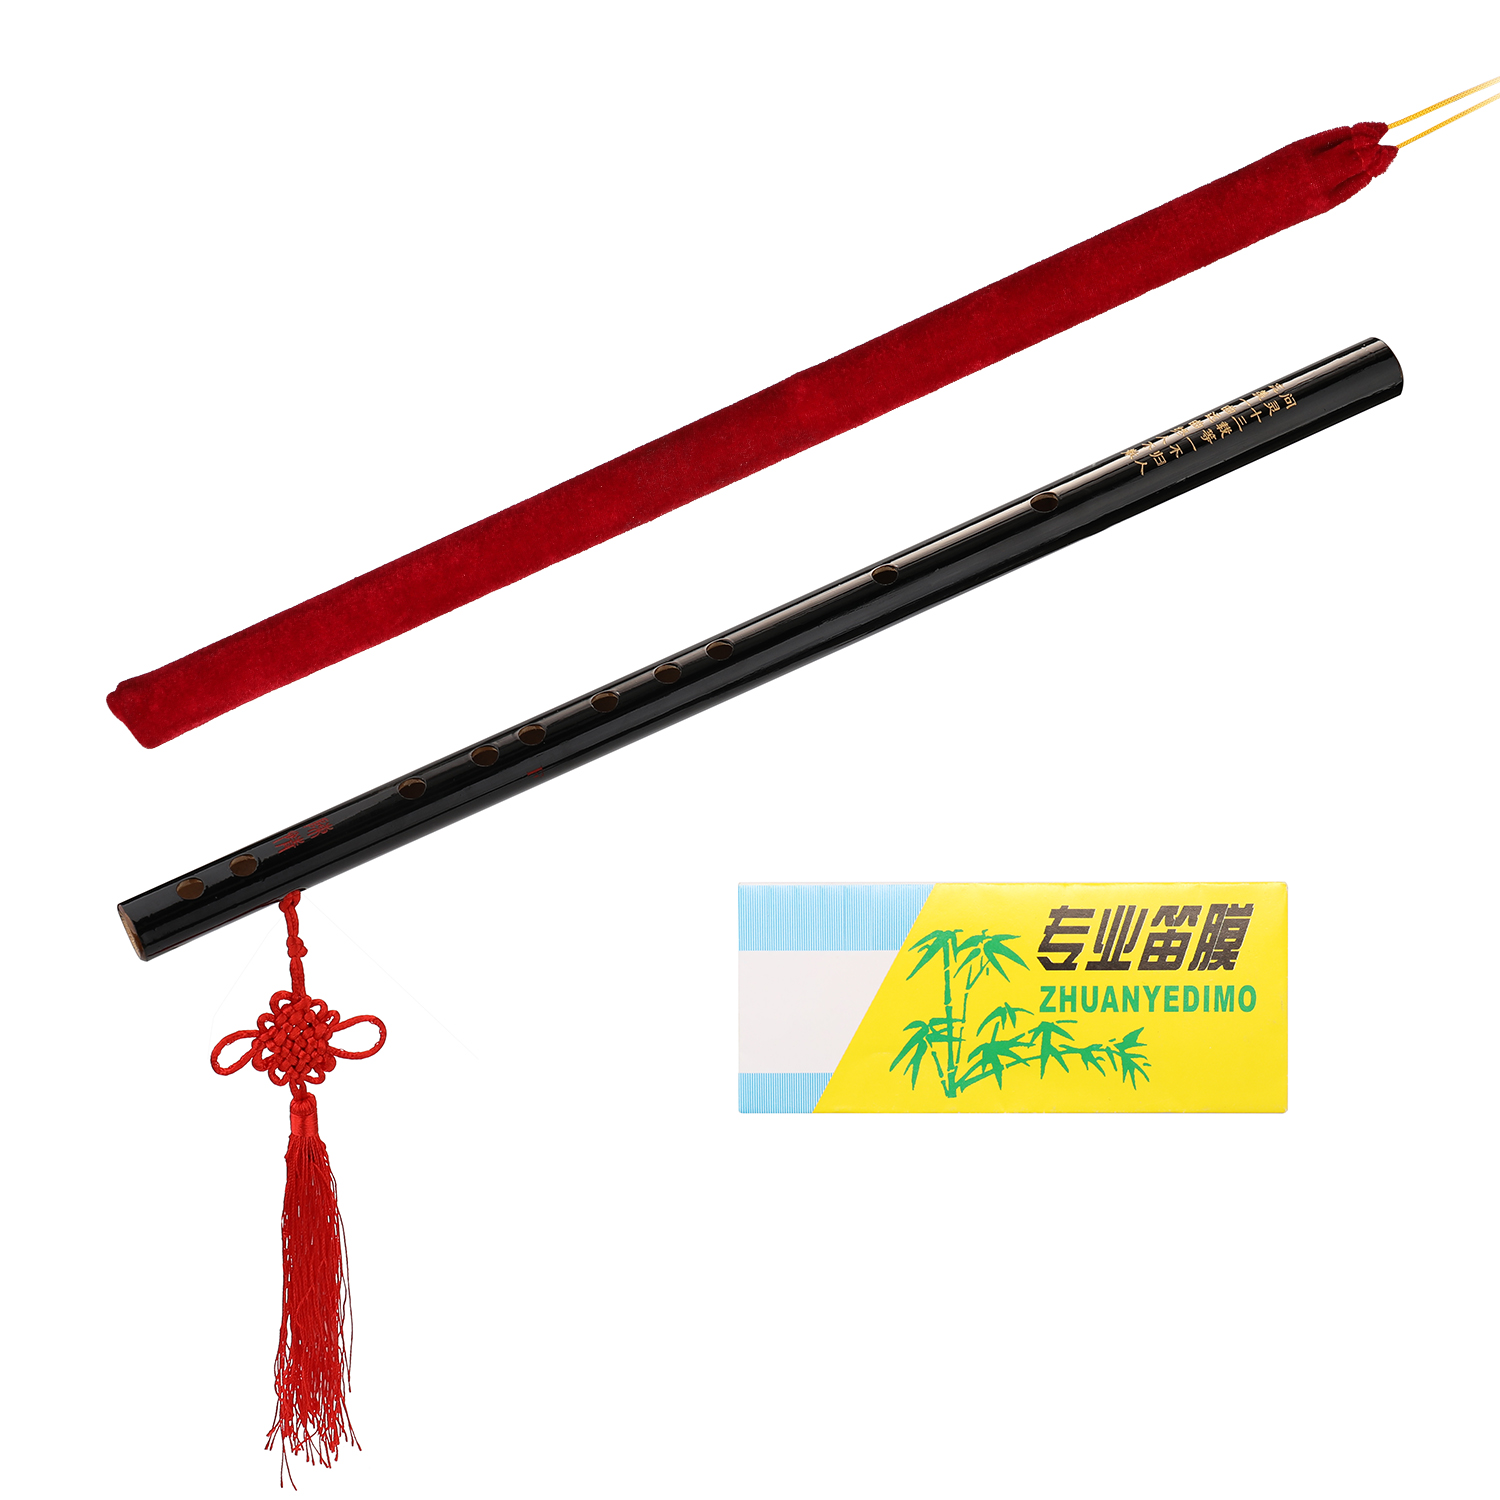 Bamboo Flute Woodwind Musical Instrument Beginner Learner Student Practice Training Traditional Handmade Bamboo Flutes